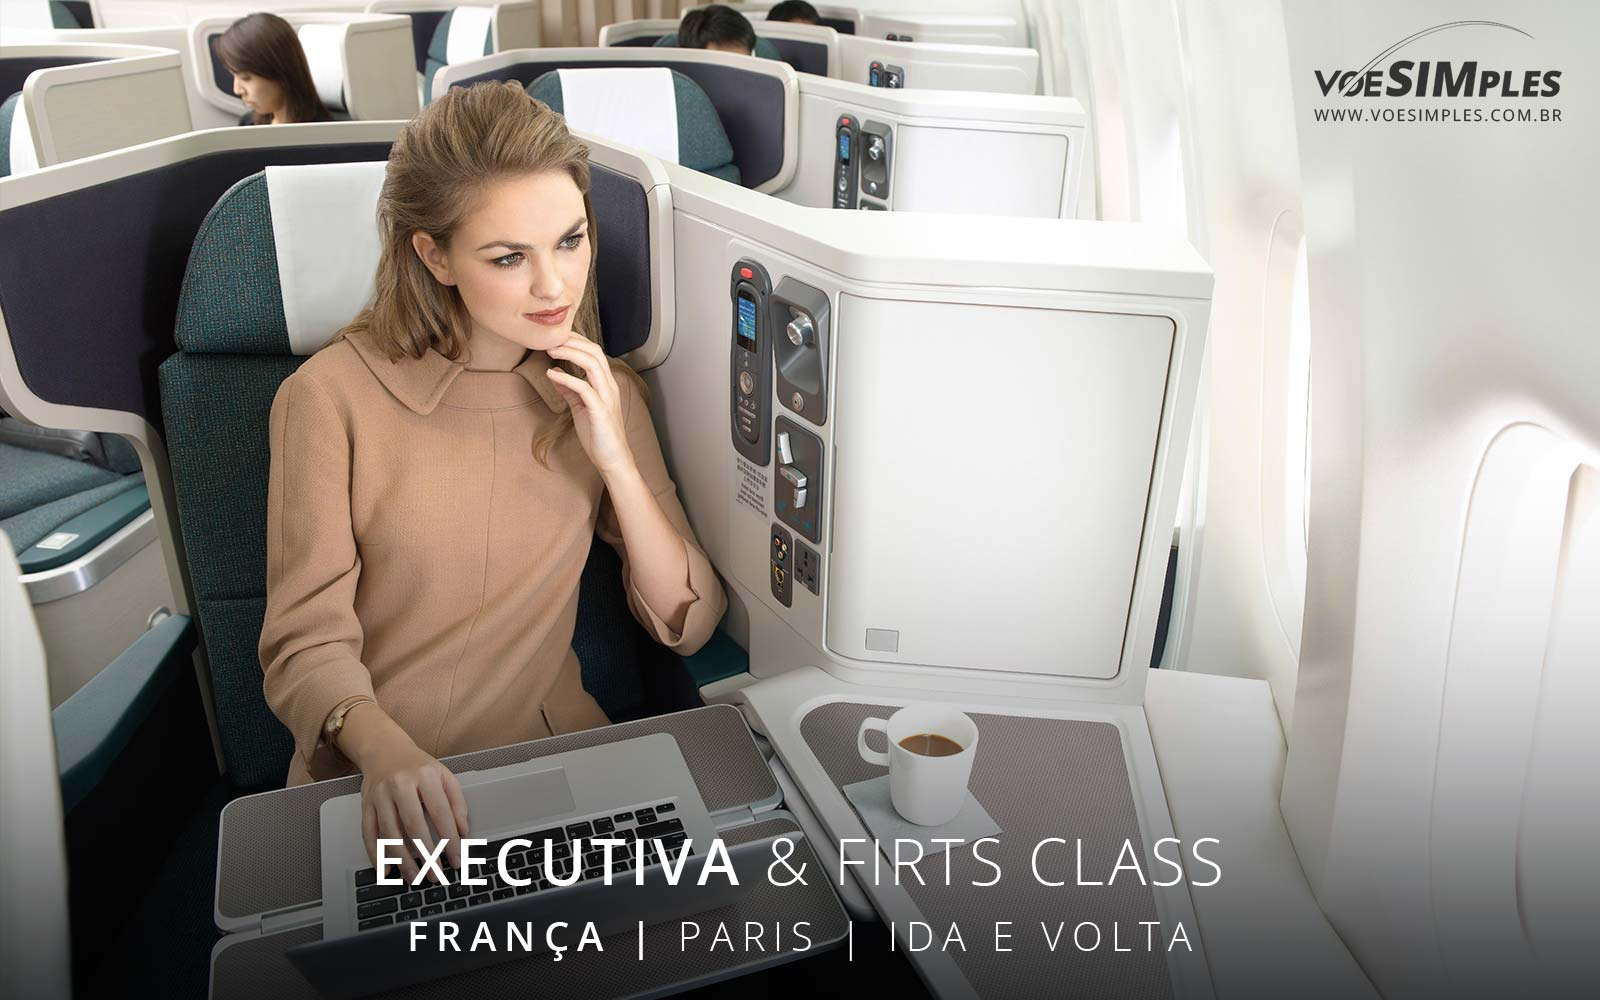 Passagem aérea Classe Executiva Air France para Paris